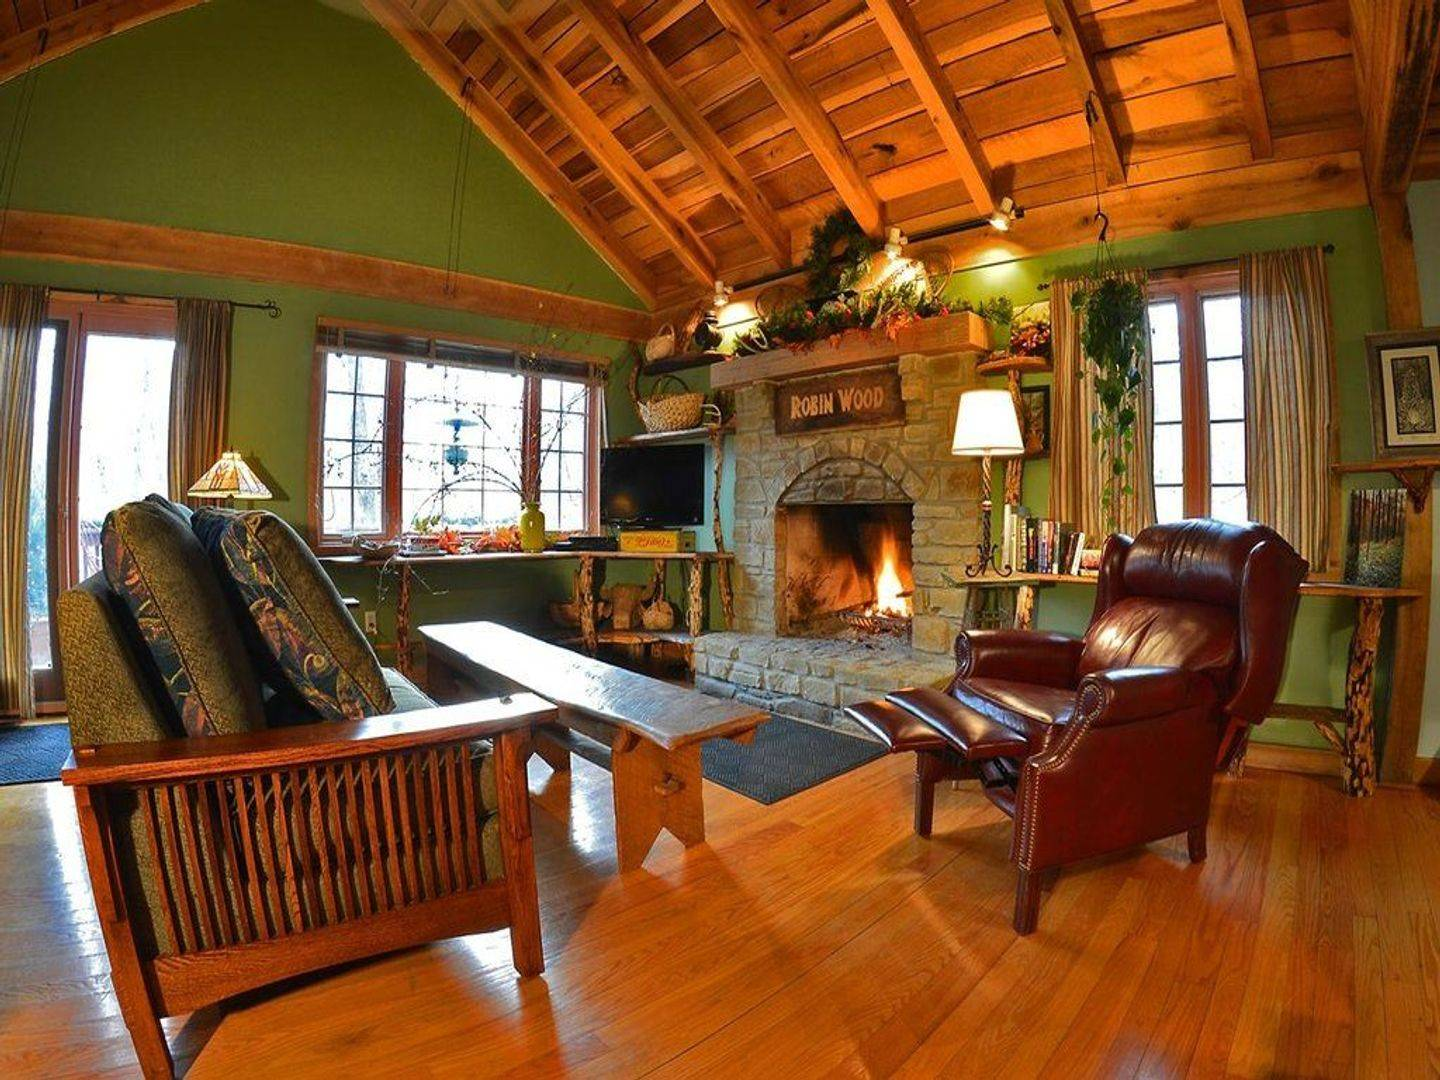 A living room filled with furniture and a fire place at Robinwood Inn.